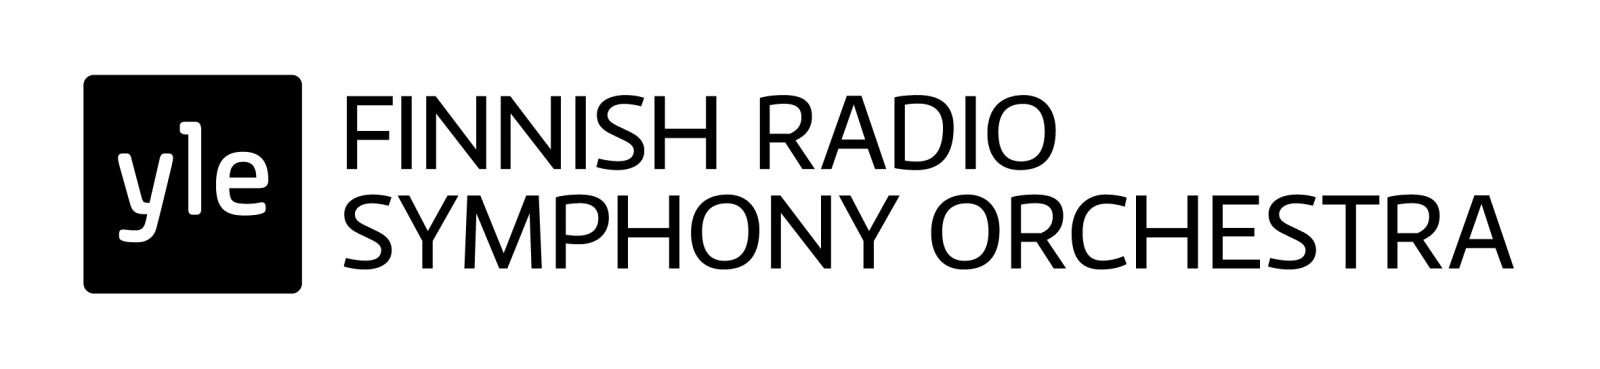 Image result for finnish radio symphony orchestra logo